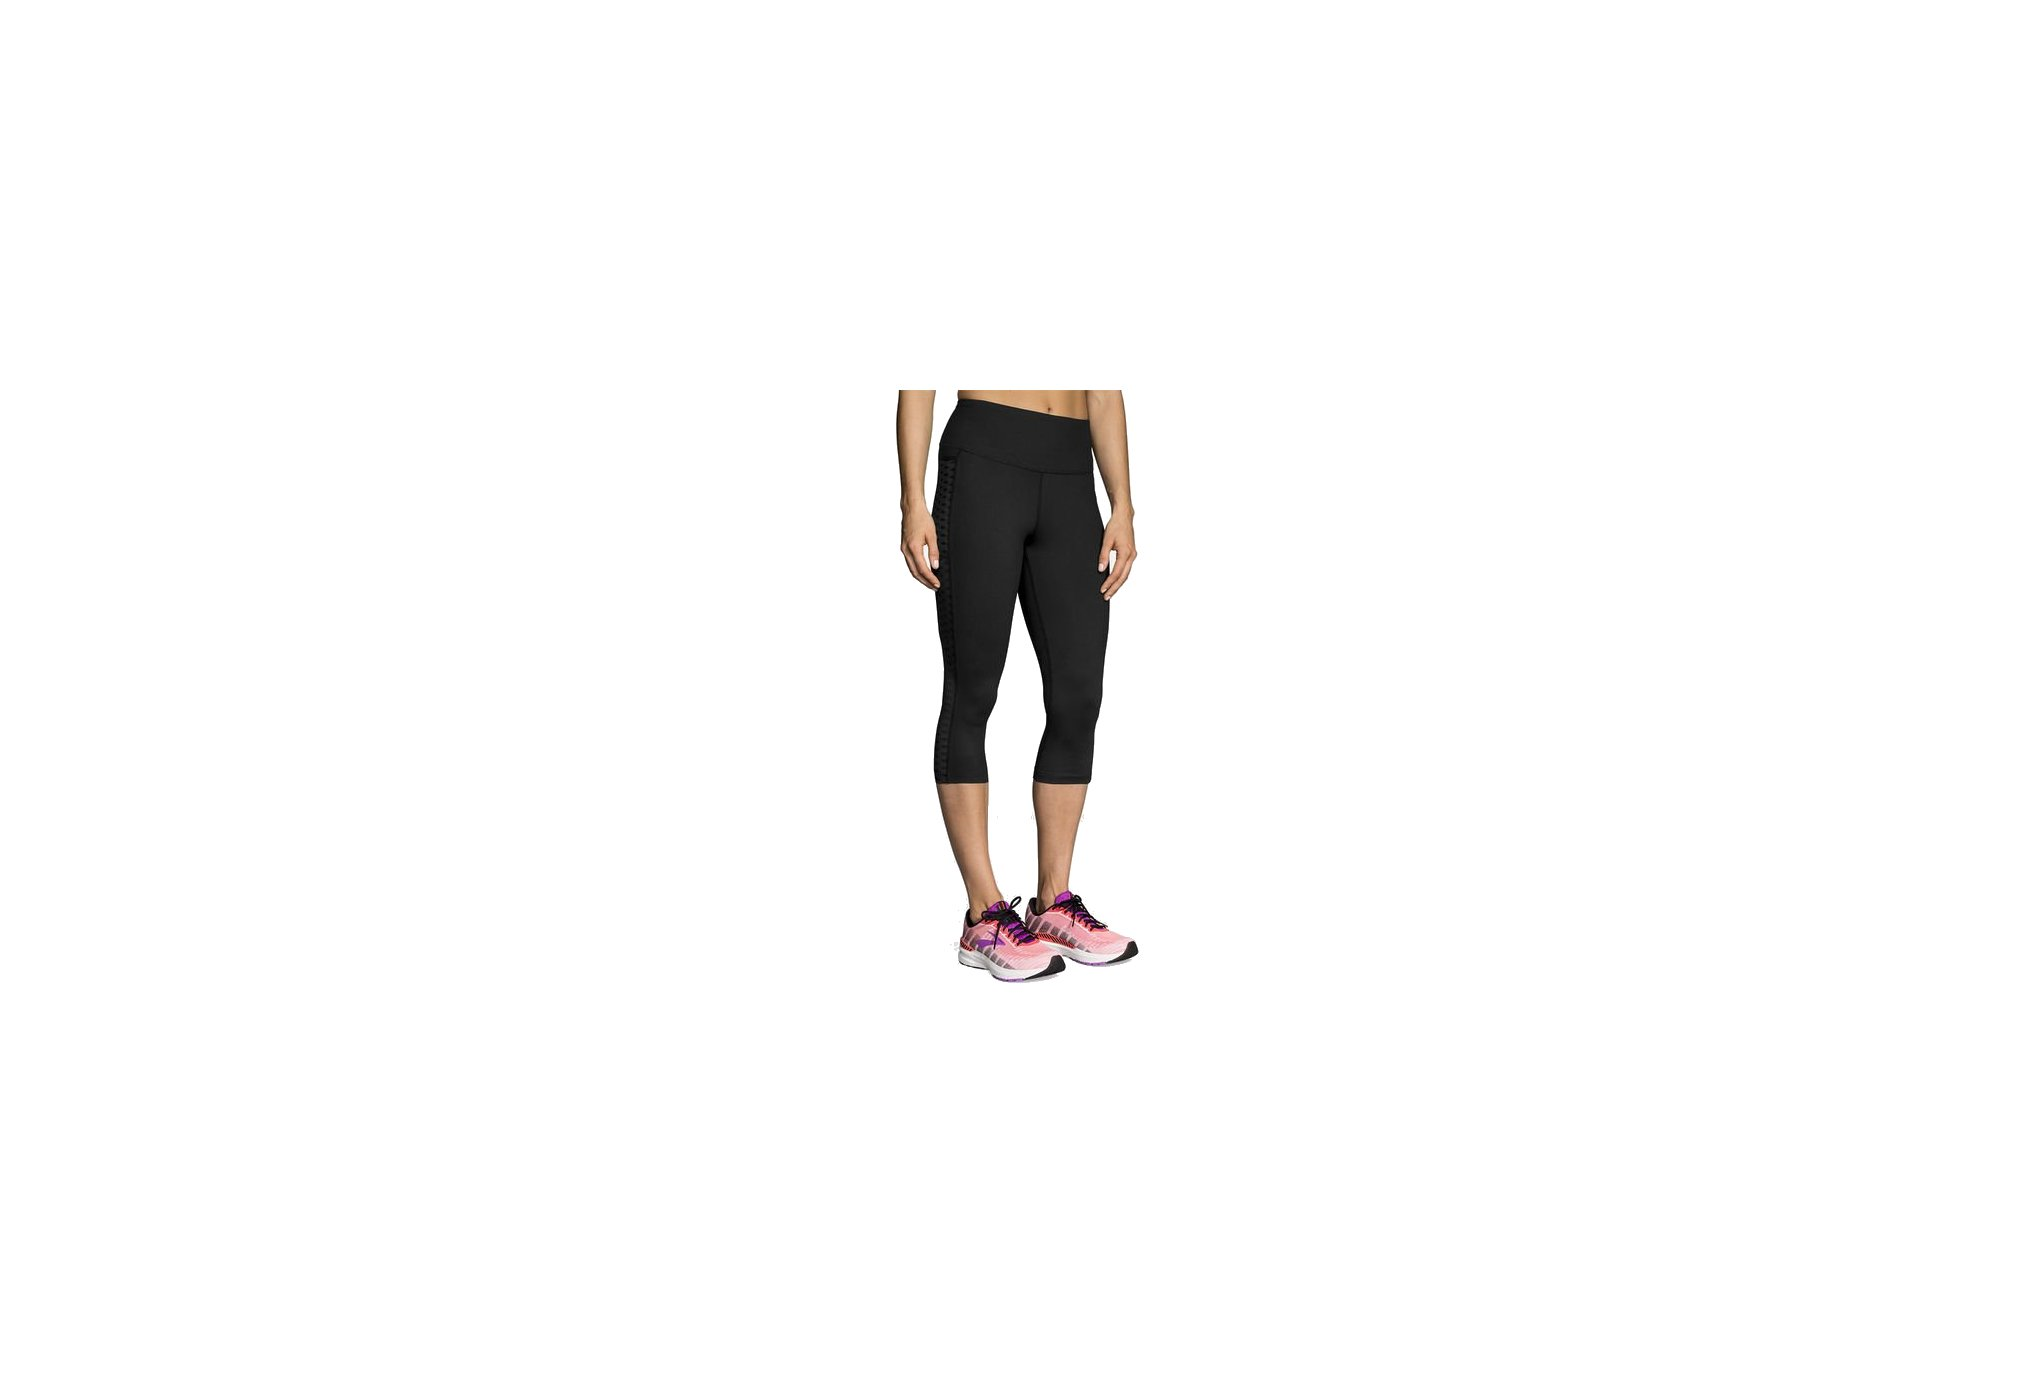 Brooks mallas 3/4 Greenlight vêtement running femme